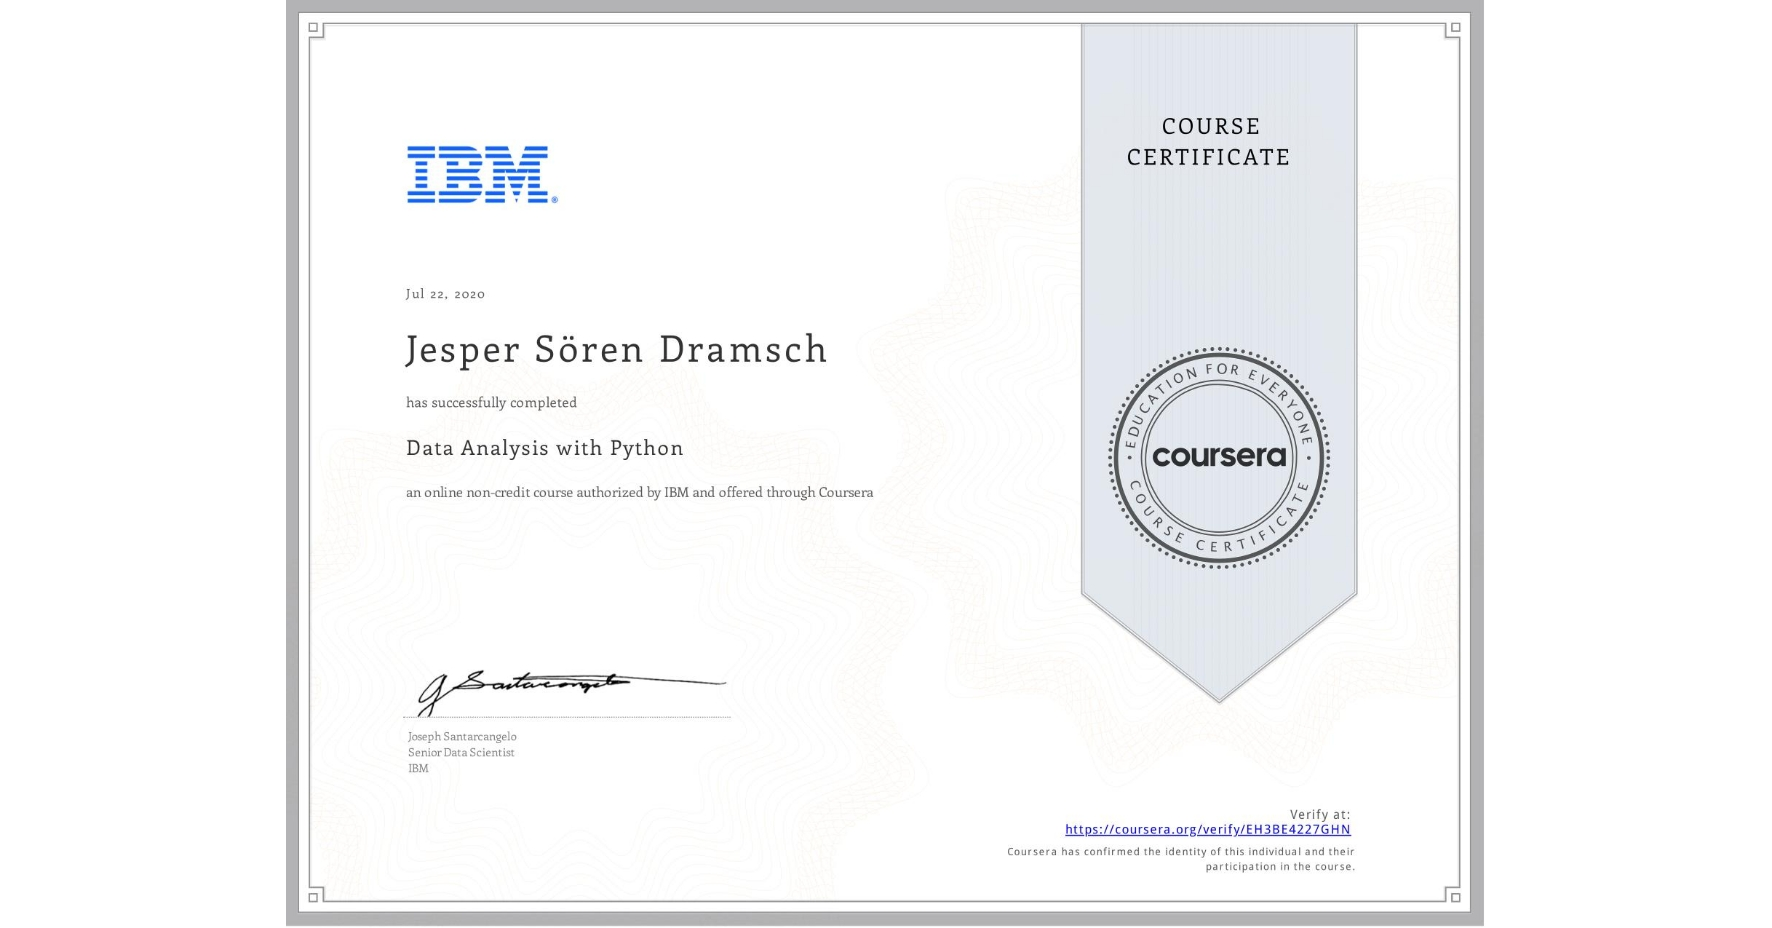 View certificate for Jesper Sören Dramsch, Data Analysis with Python, an online non-credit course authorized by IBM and offered through Coursera